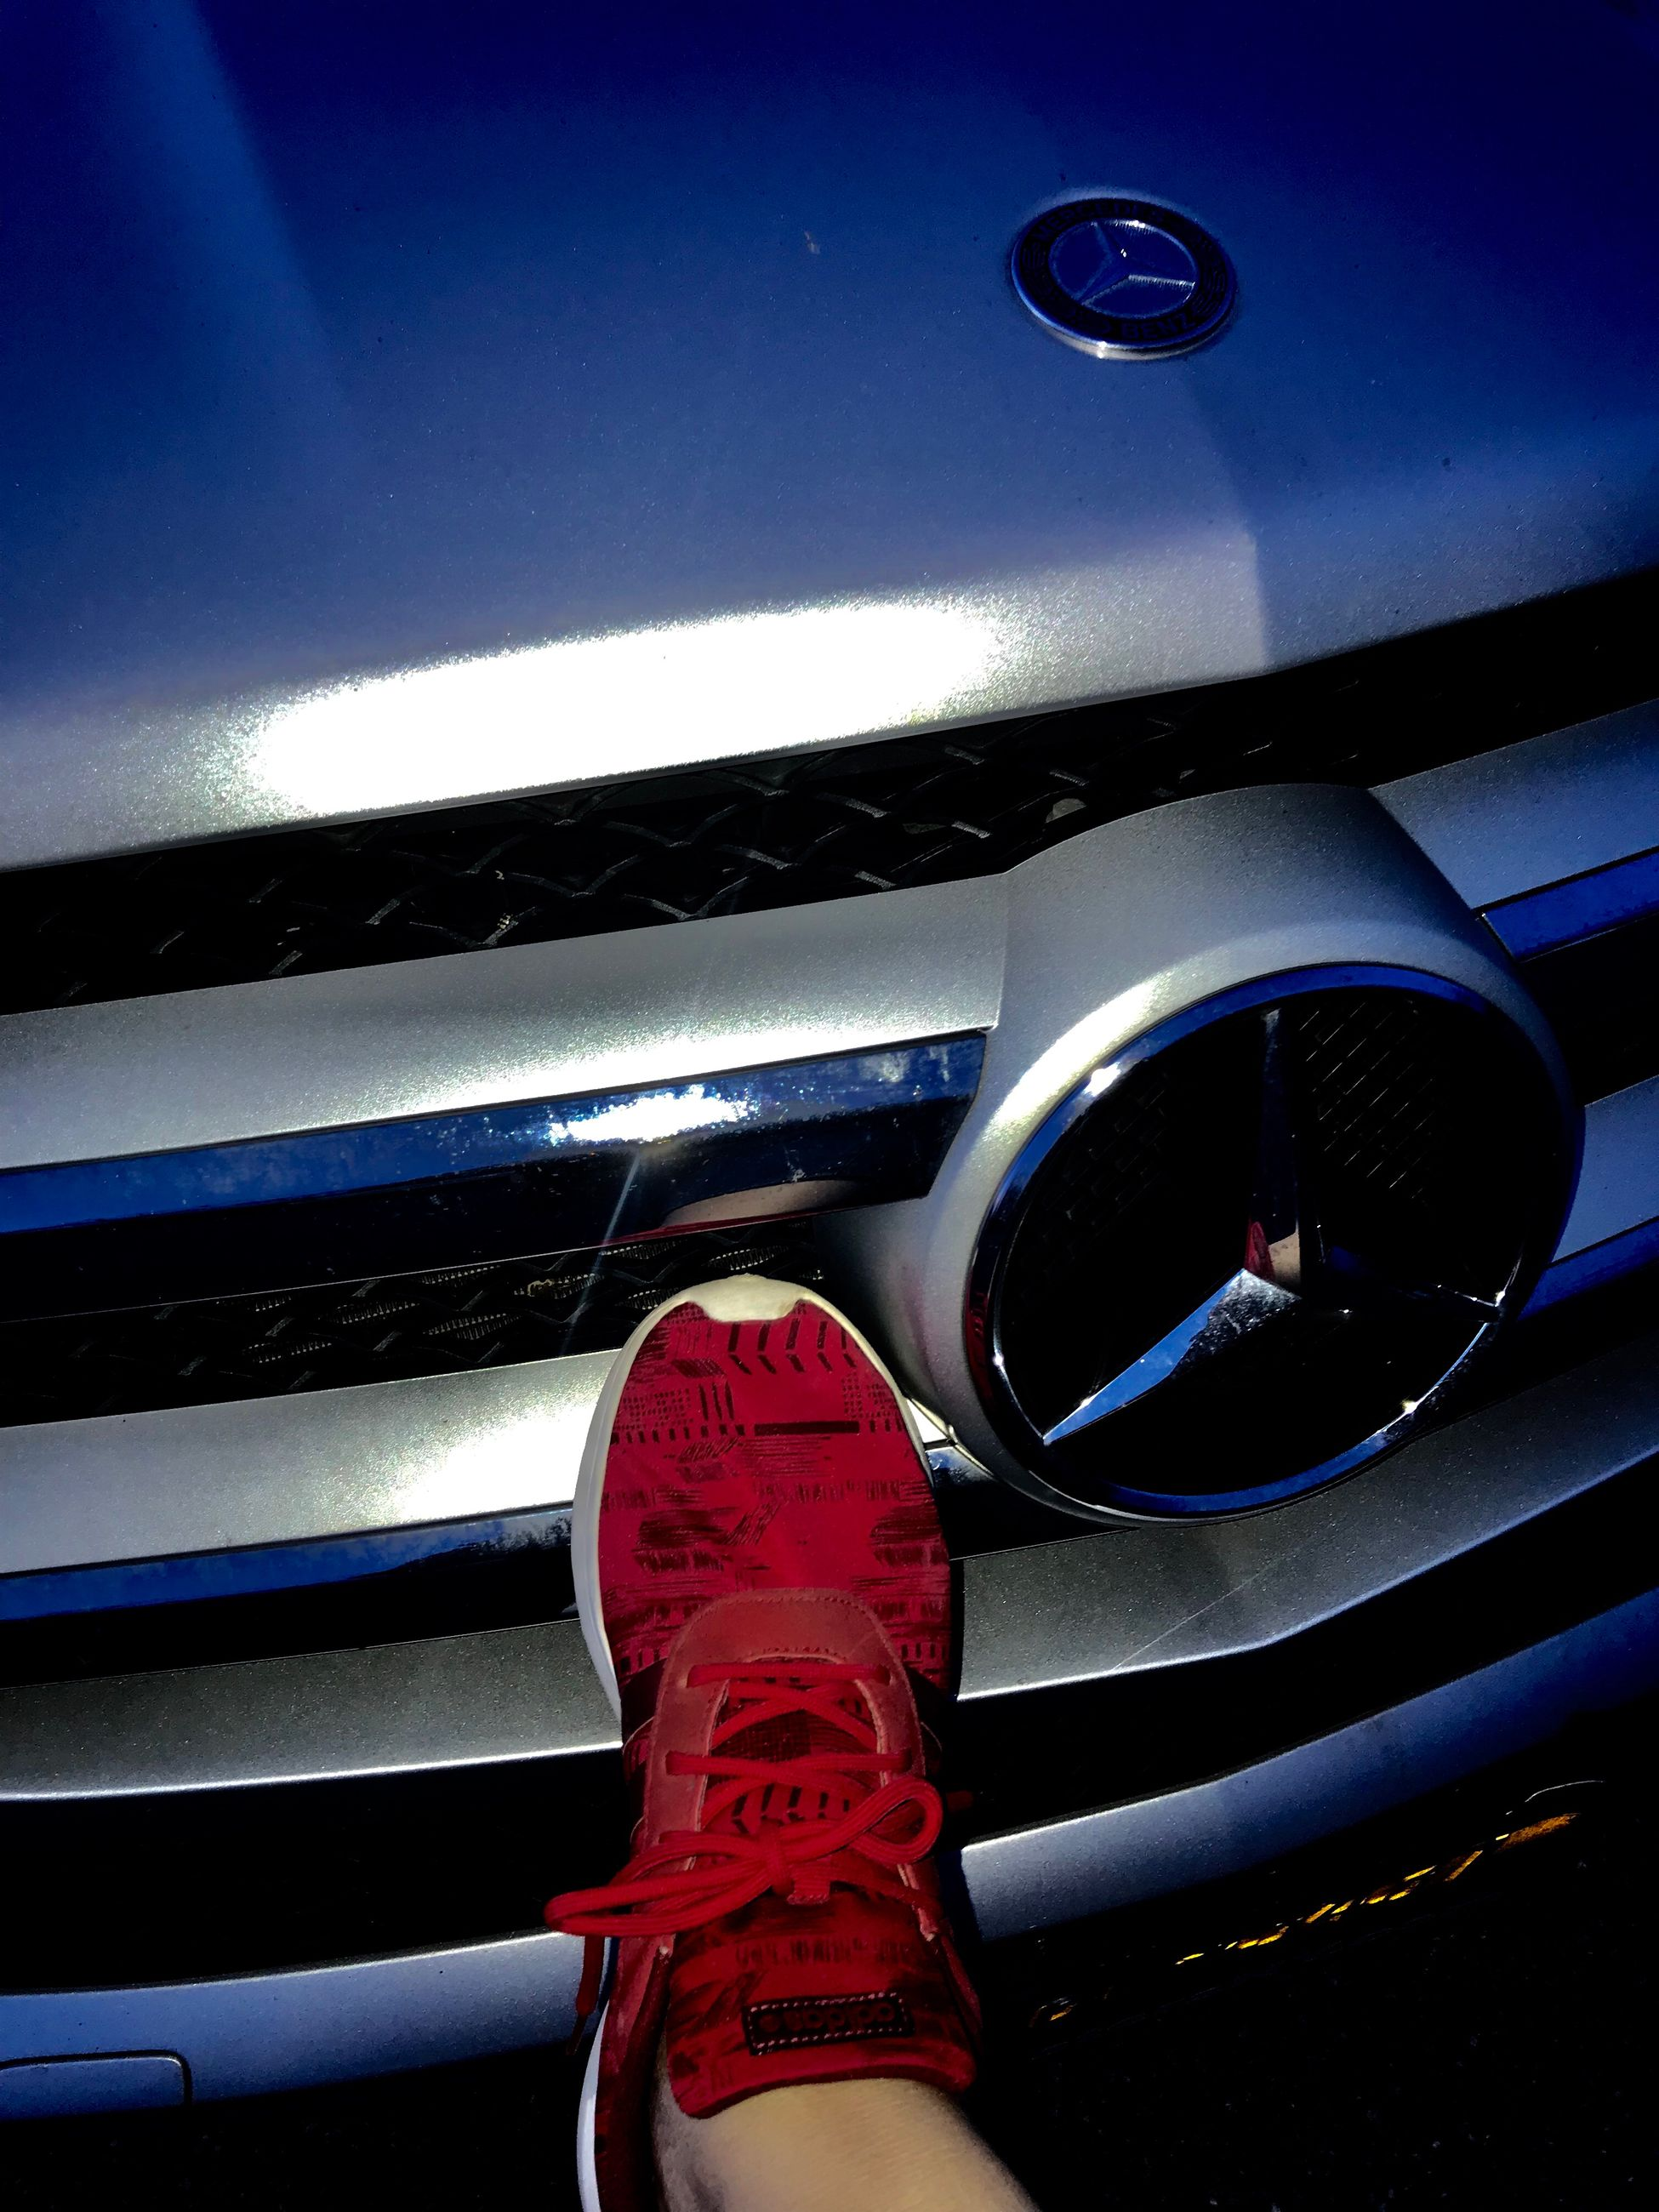 shoe, motor vehicle, car, land vehicle, transportation, mode of transportation, human body part, real people, personal perspective, low section, metal, blue, reflection, body part, one person, red, day, human leg, high angle view, close-up, human foot, chrome, human limb